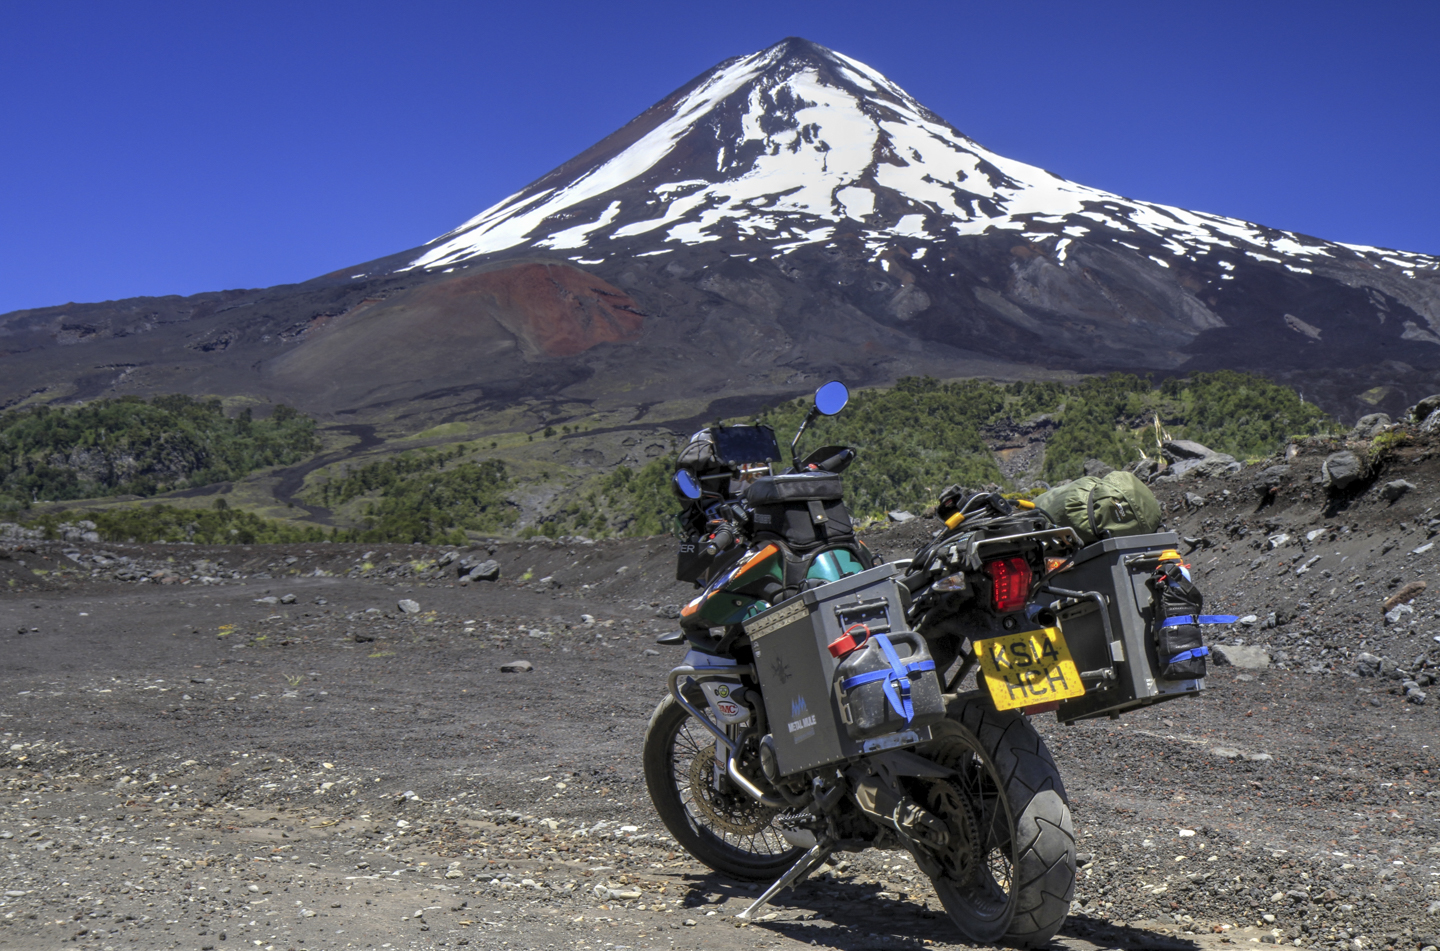 Epic Rides in Chile – Conguillío National Park